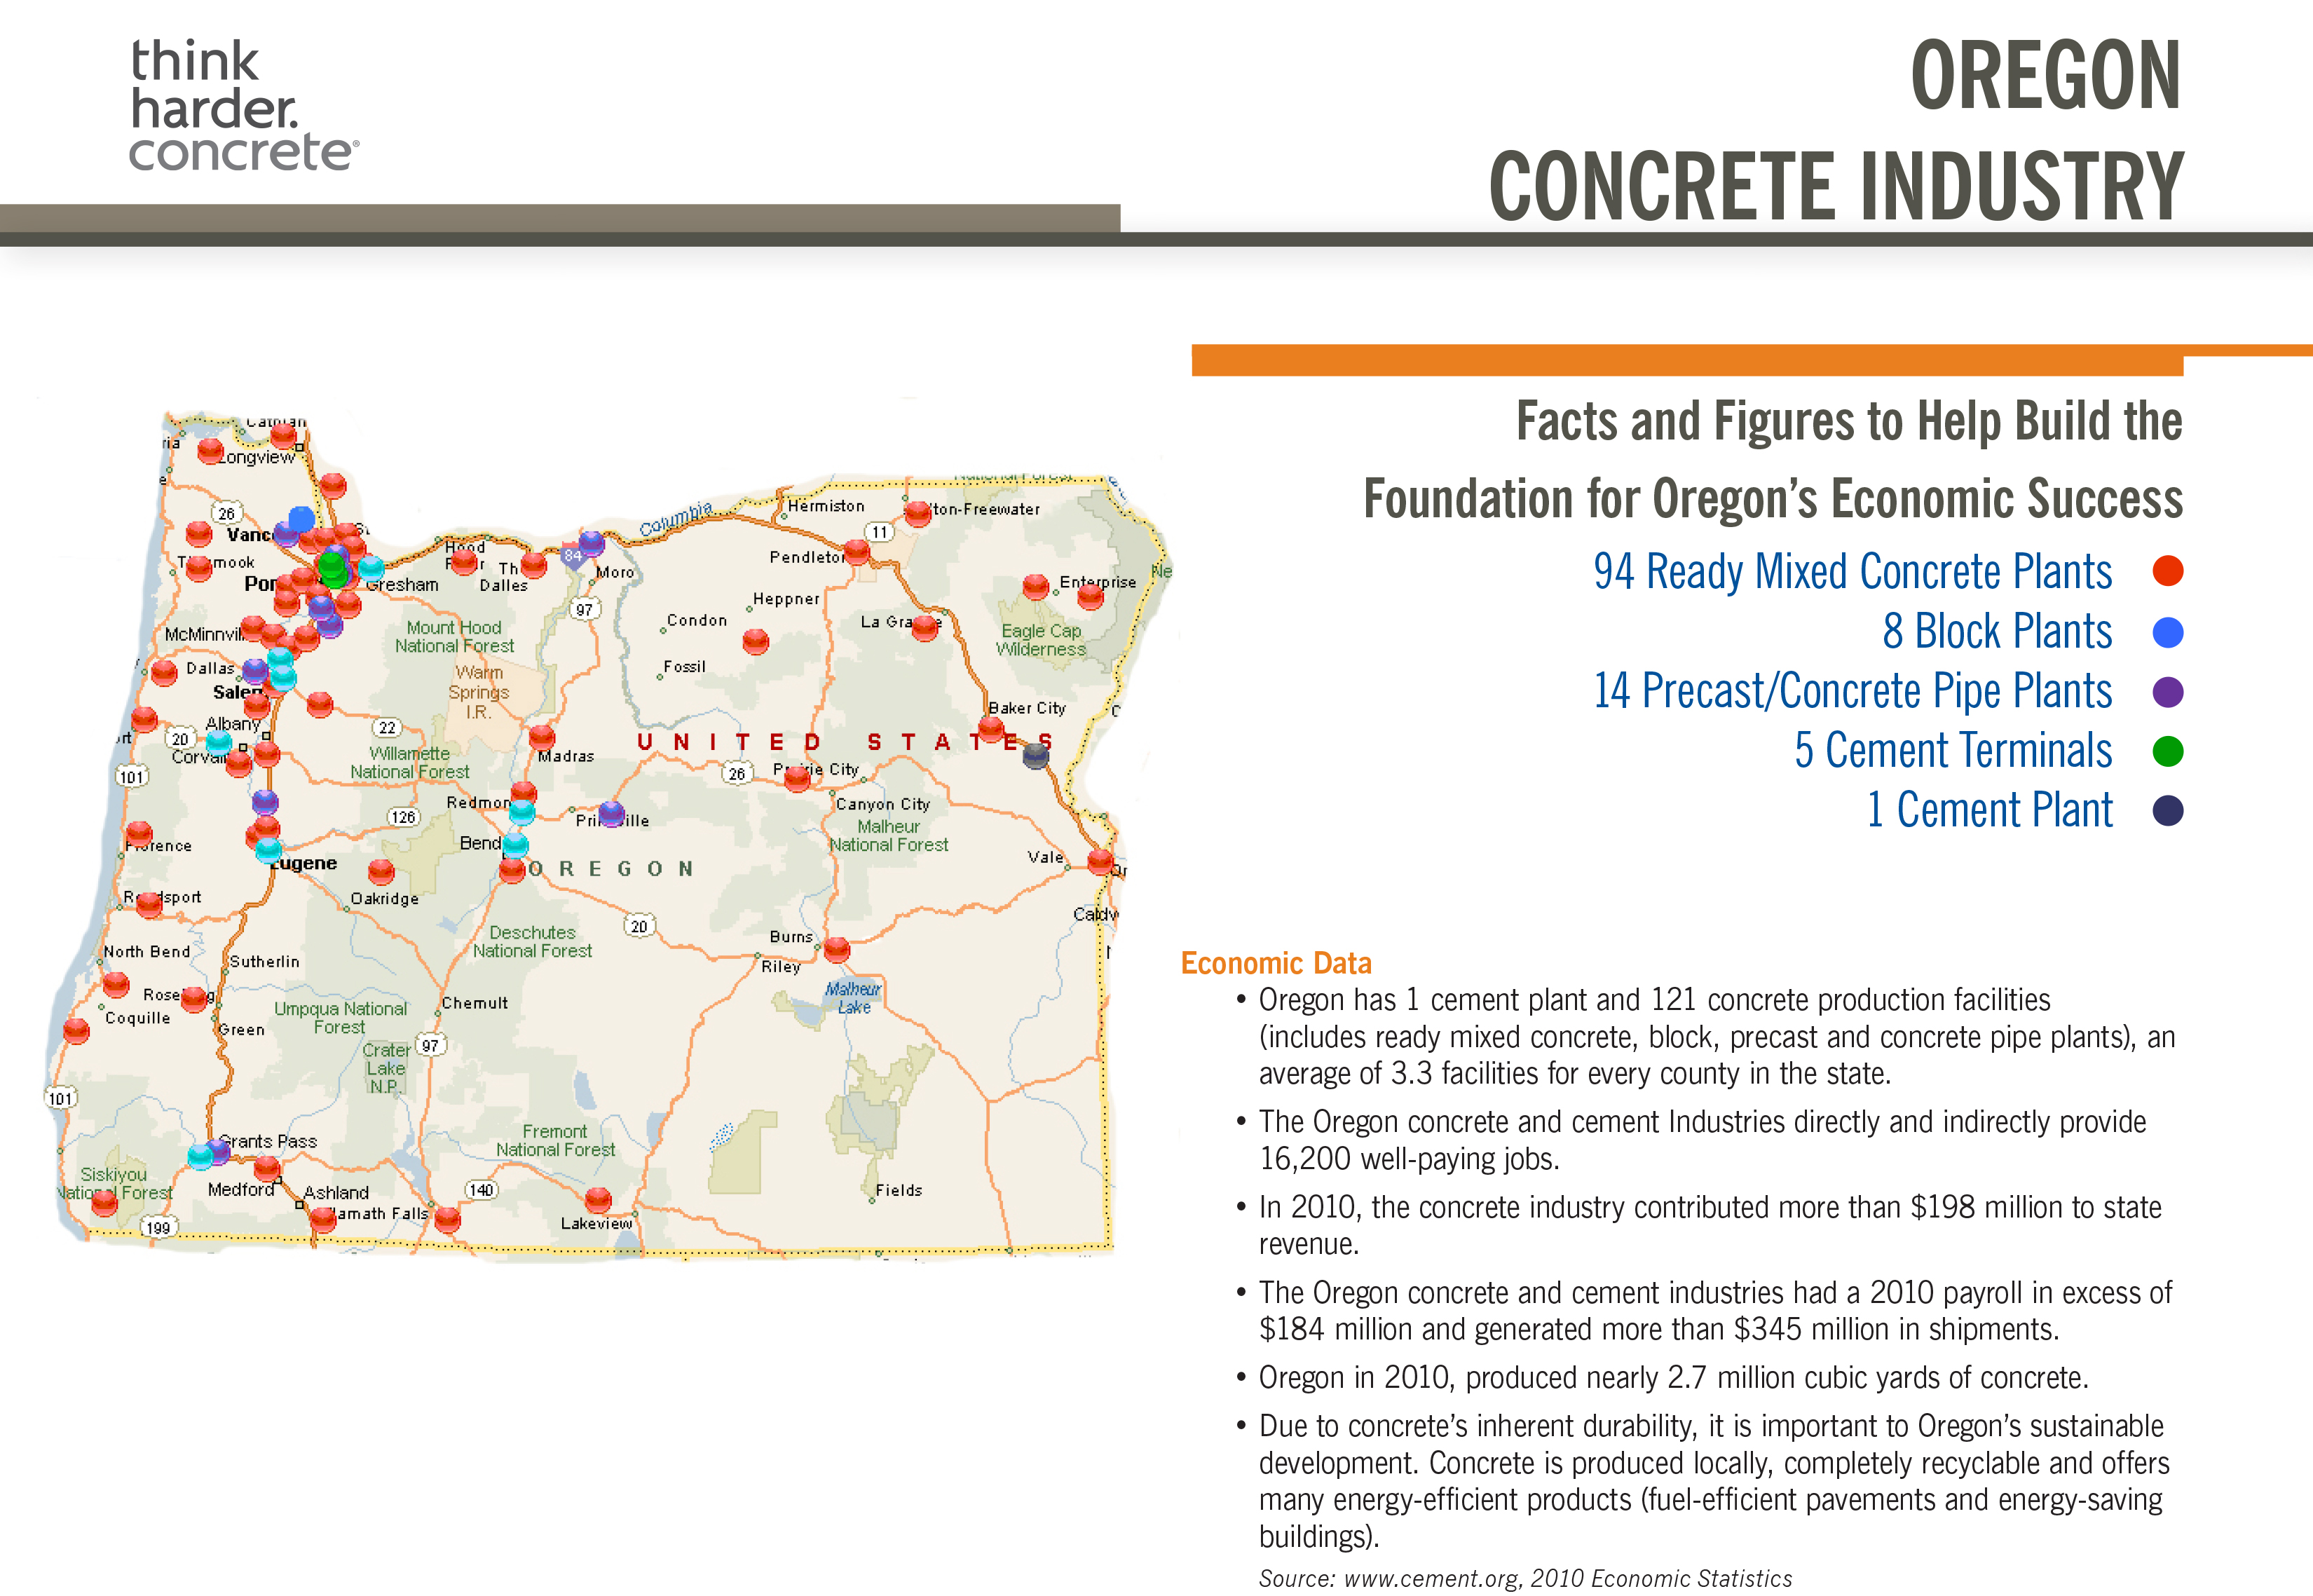 Oregon Concrete Industry Fact Sheet - 1